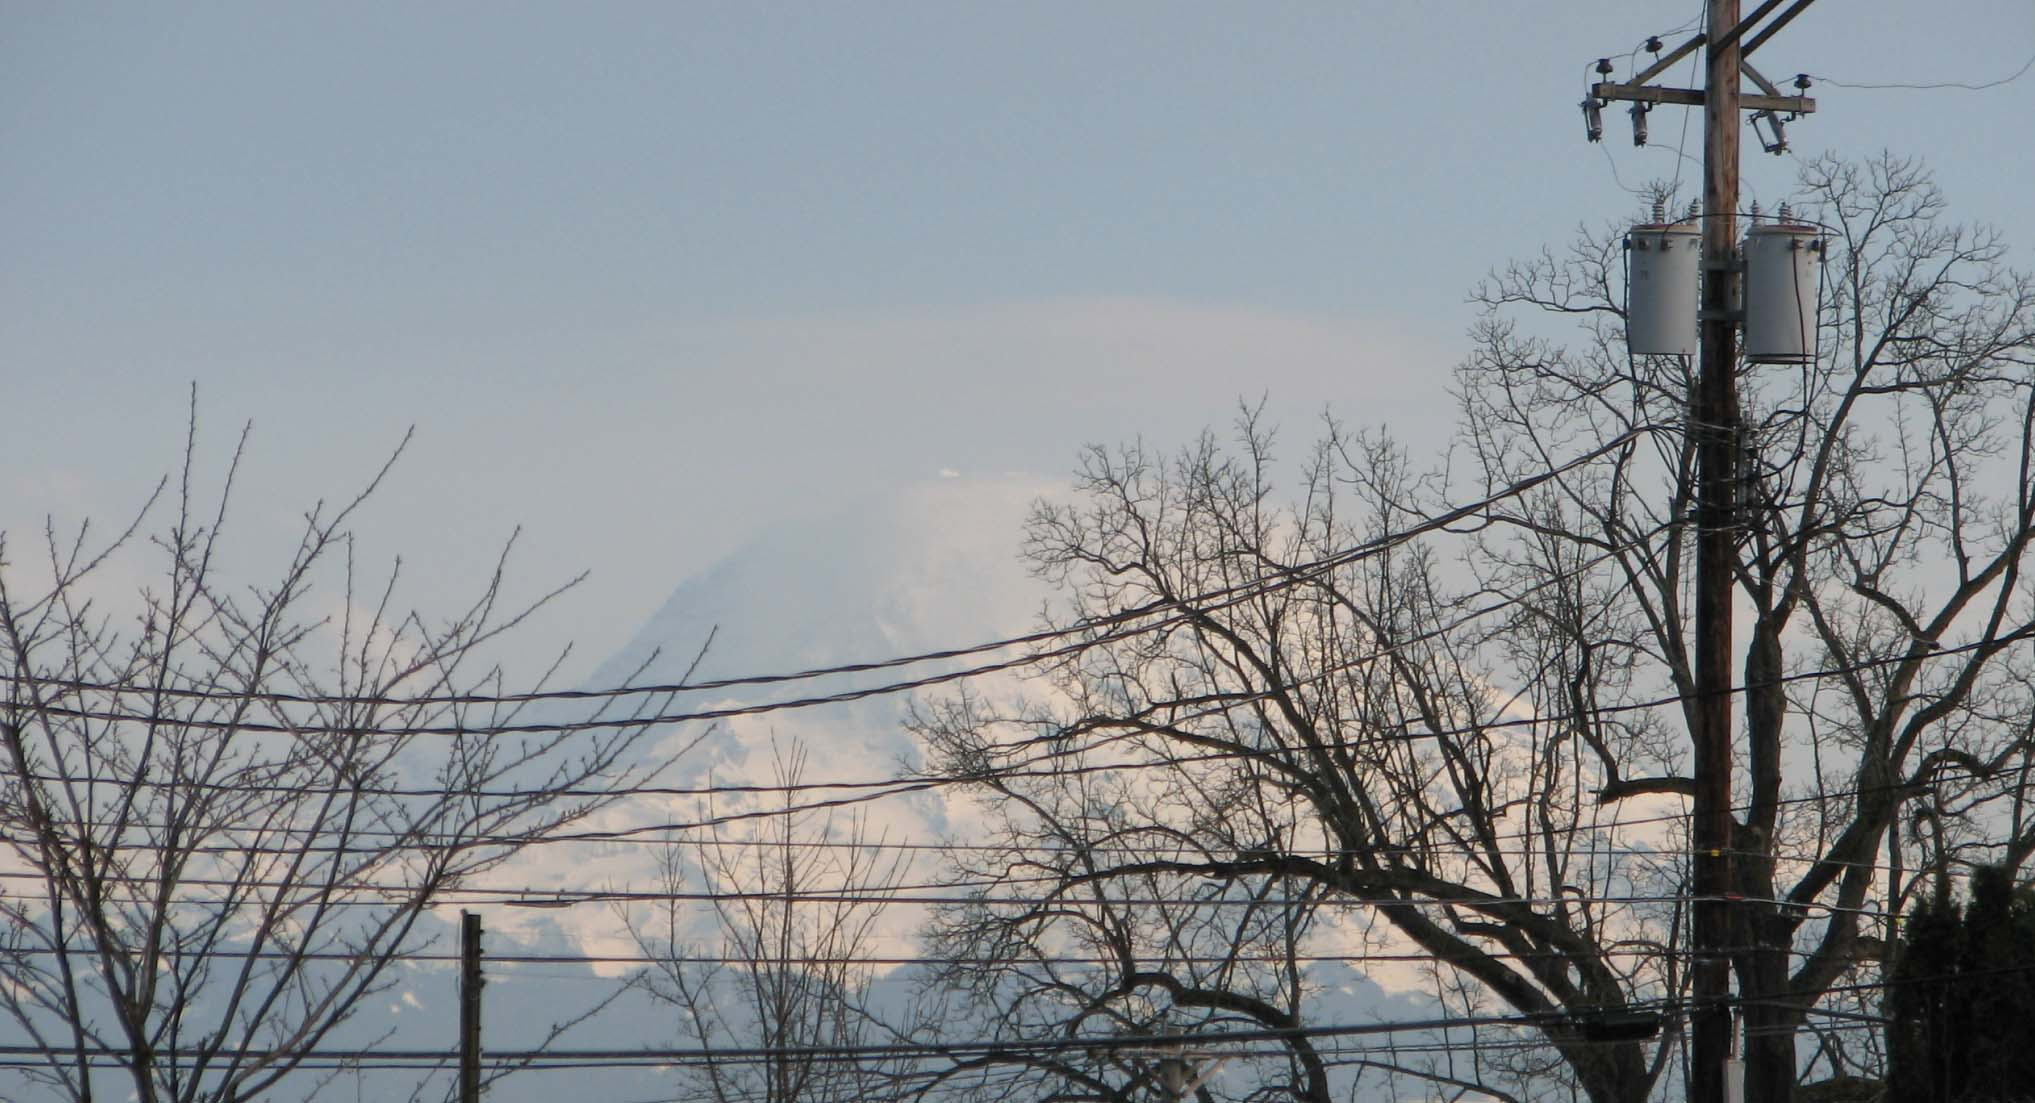 Caption: The drunken wires of Tacoma keep Mt. Rainier at a distance., Credit: PHOTO: Megan Sukys